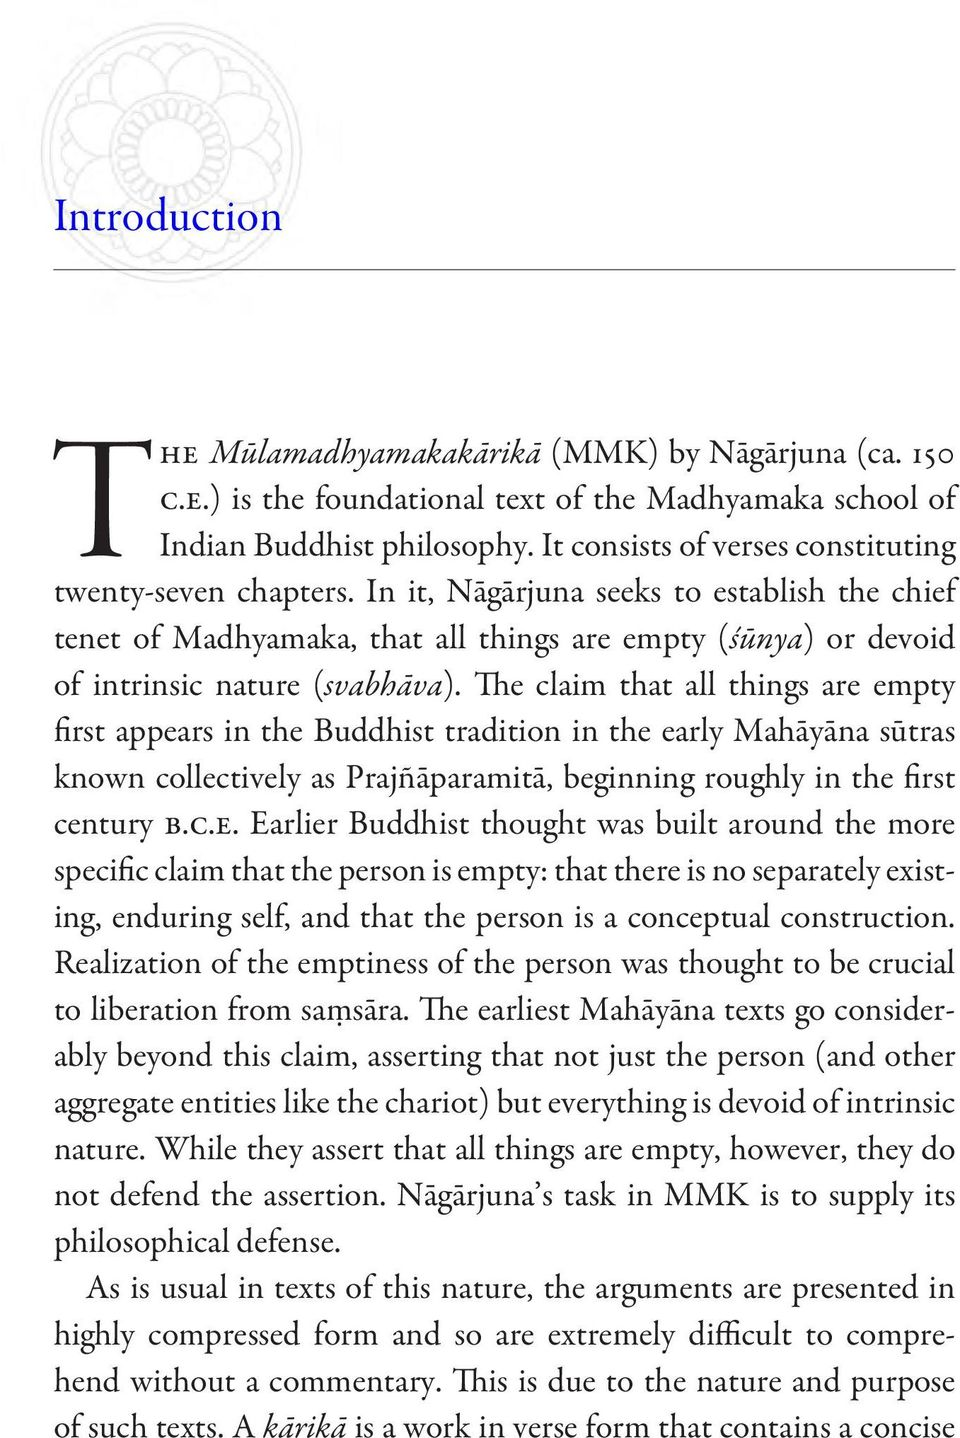 The claim that all things are empty first appears in the Buddhist tradition in the early Mahāyāna sūtras known collectively as Prajñāparamitā, beginning roughly in the first century b.c.e. Earlier Buddhist thought was built around the more specific claim that the person is empty: that there is no separately existing, enduring self, and that the person is a conceptual construction.